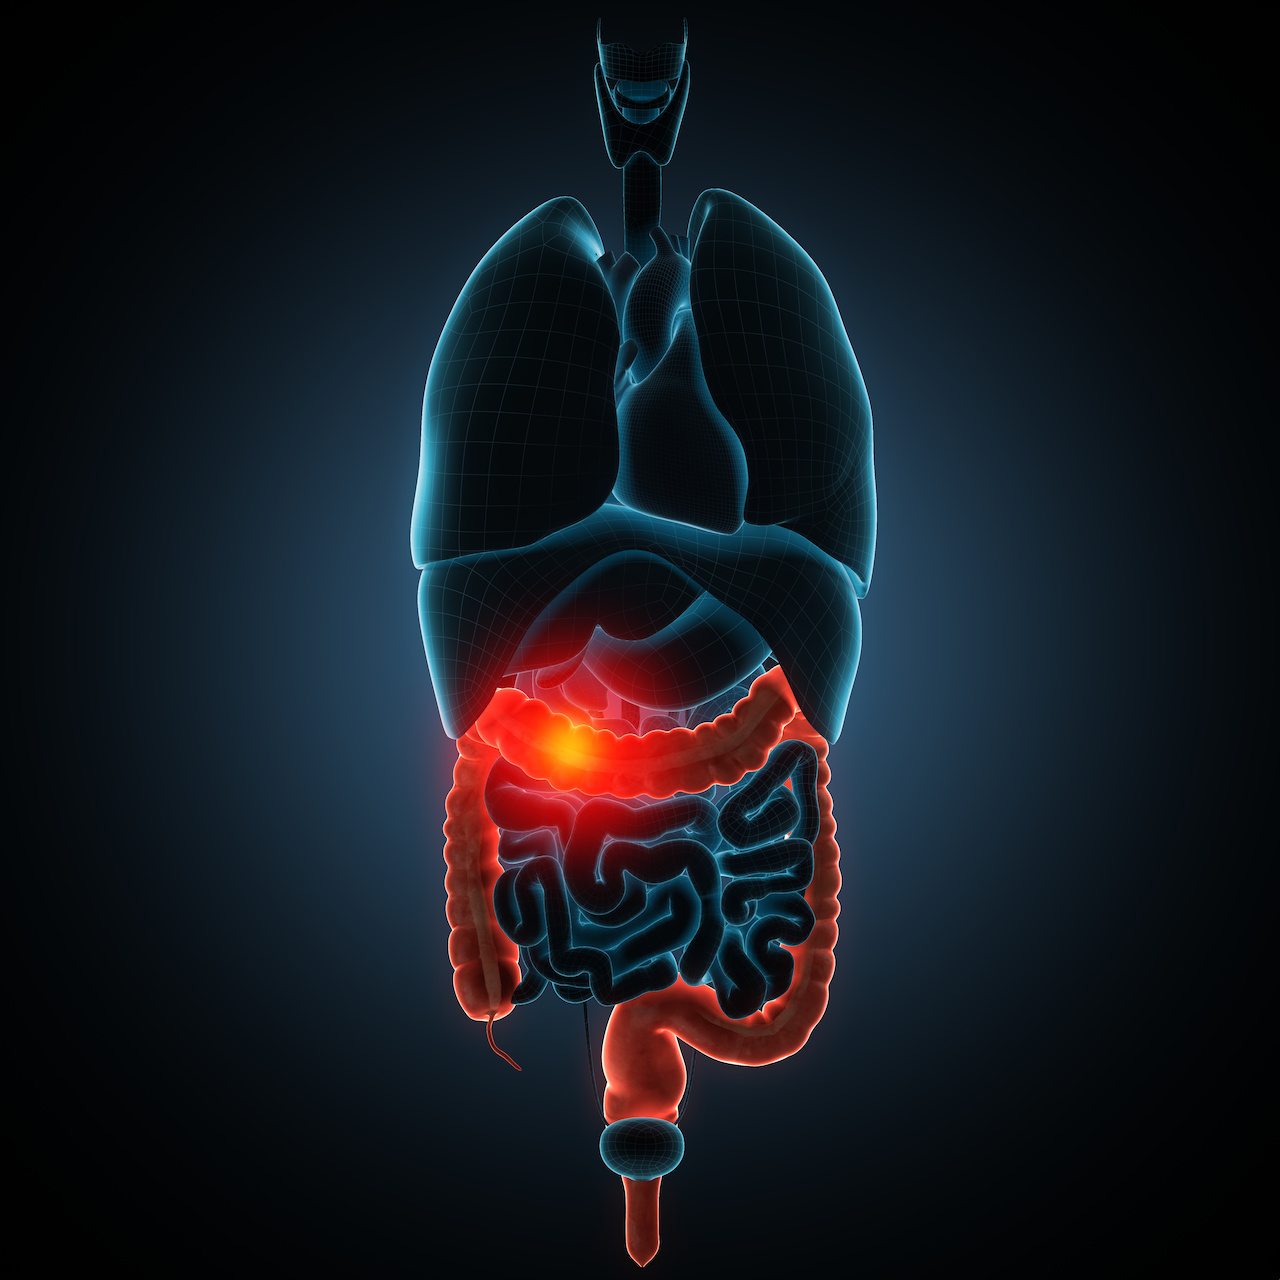 Crohns Disease Treatment, RHB-104, Yields Positive Results in Phase 3 Trial